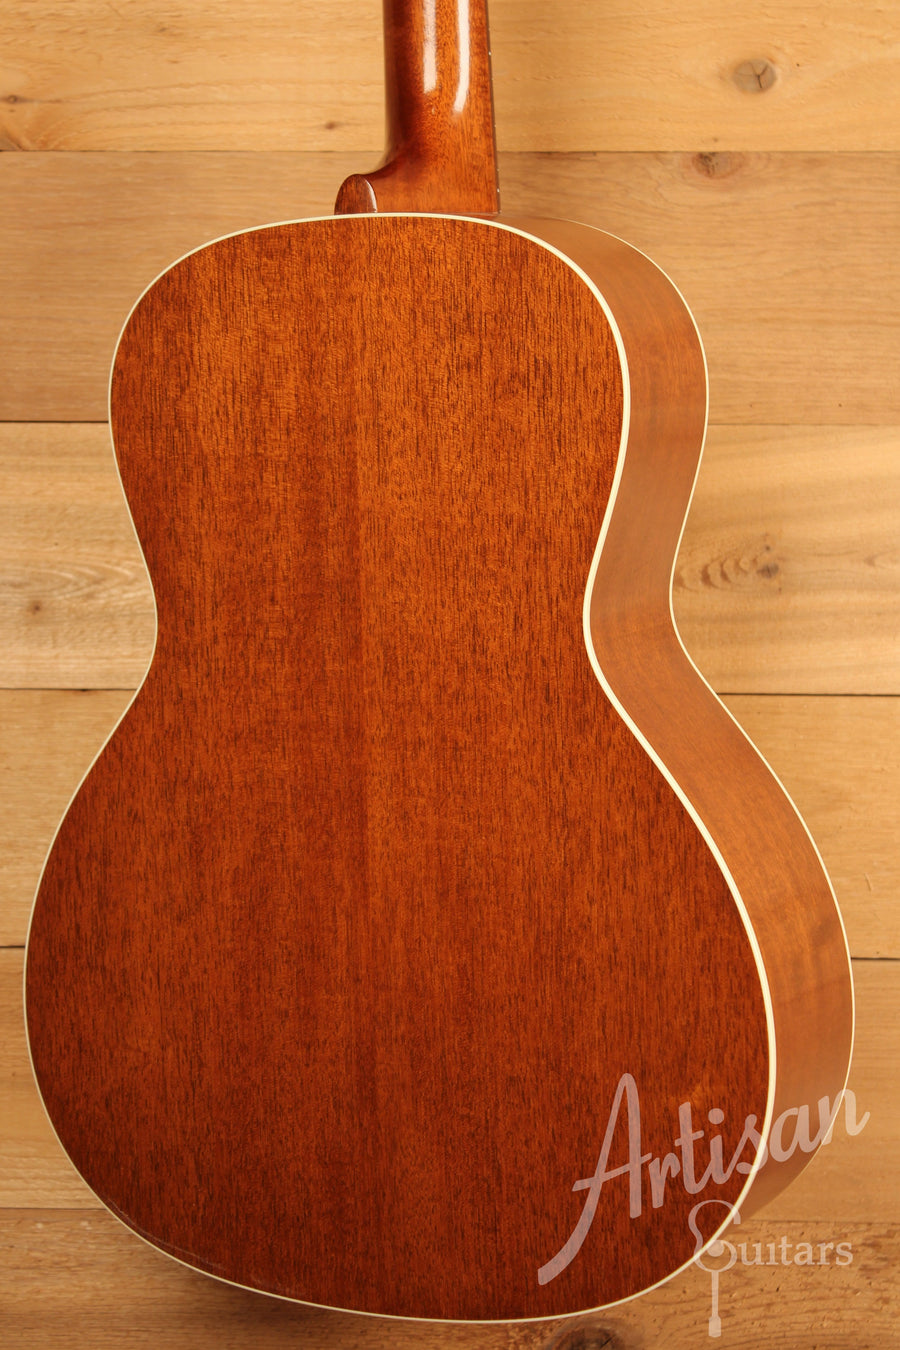 Waterloo WL-12 MH All Mahogany Guitar with Truss Rod ID-11458